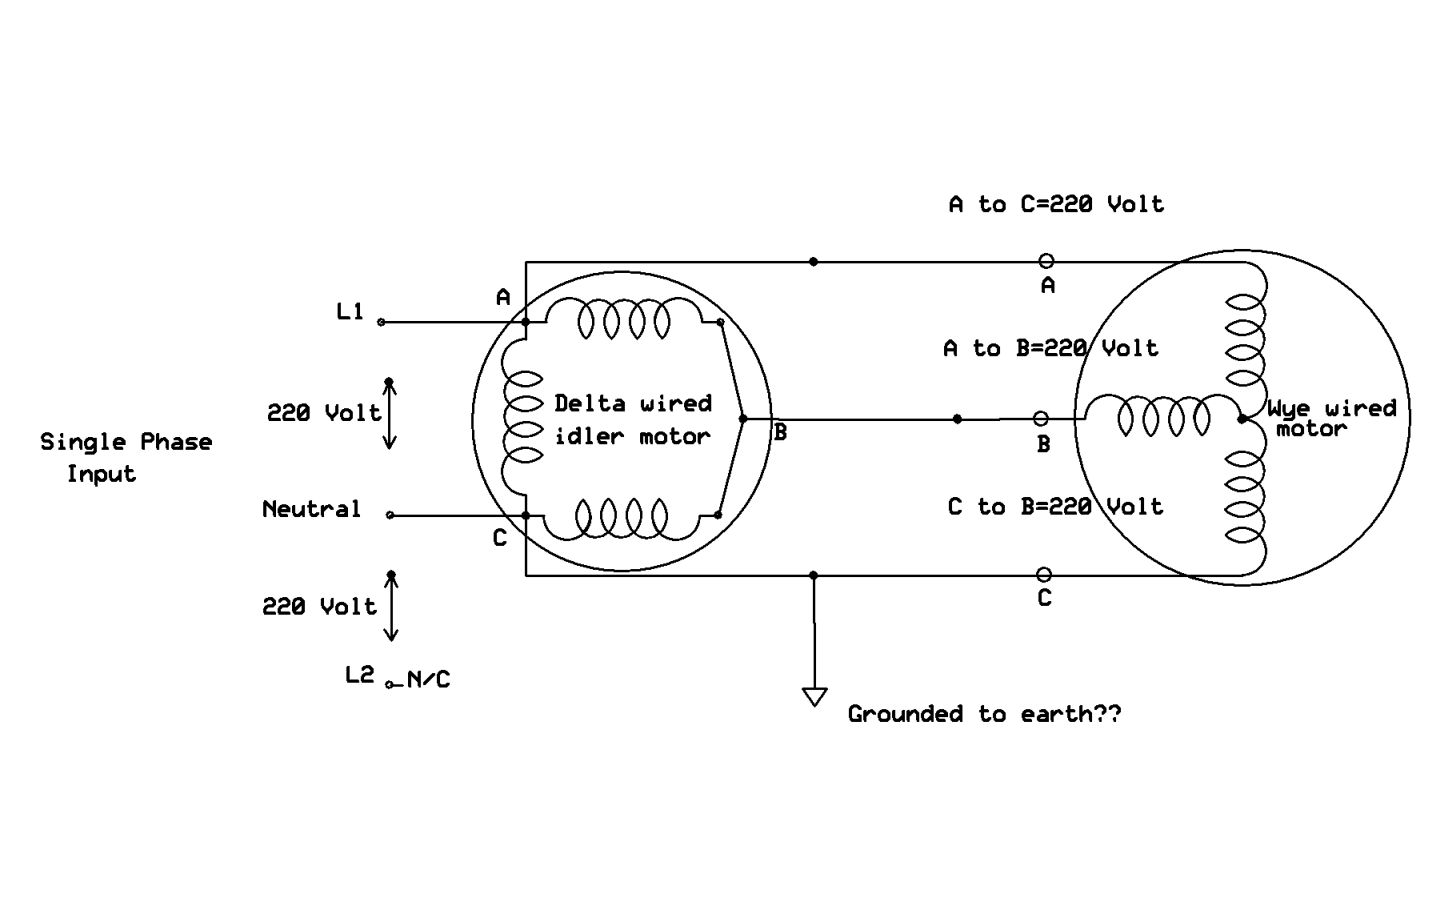 wiring diagram of wye delta motor control australian home phone schematic get free image about